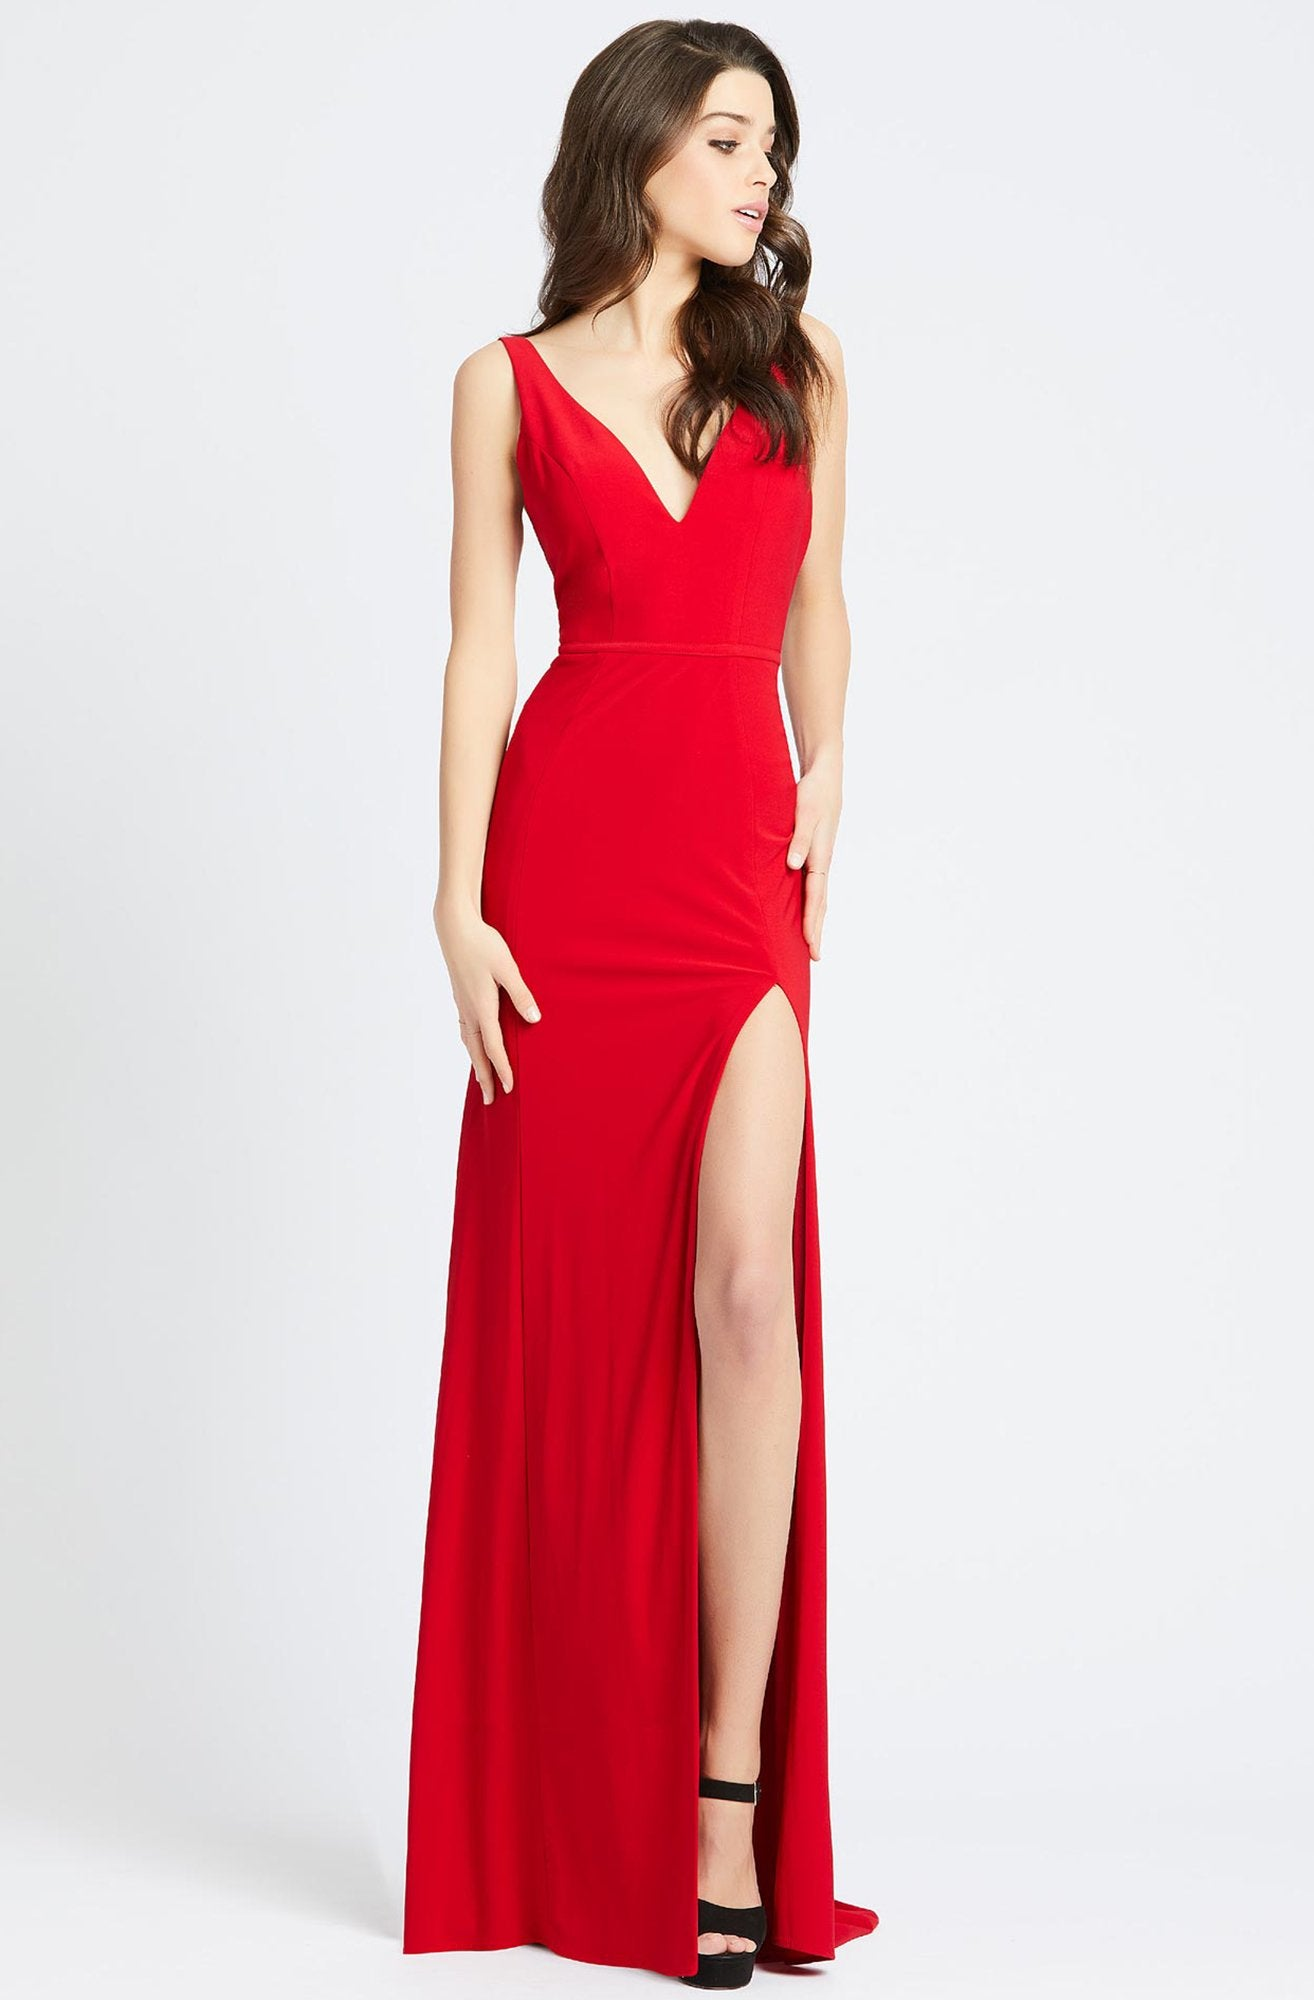 Ieena Duggal - Plunging V-Neck High Slit Sheath Gown 25846I In Red